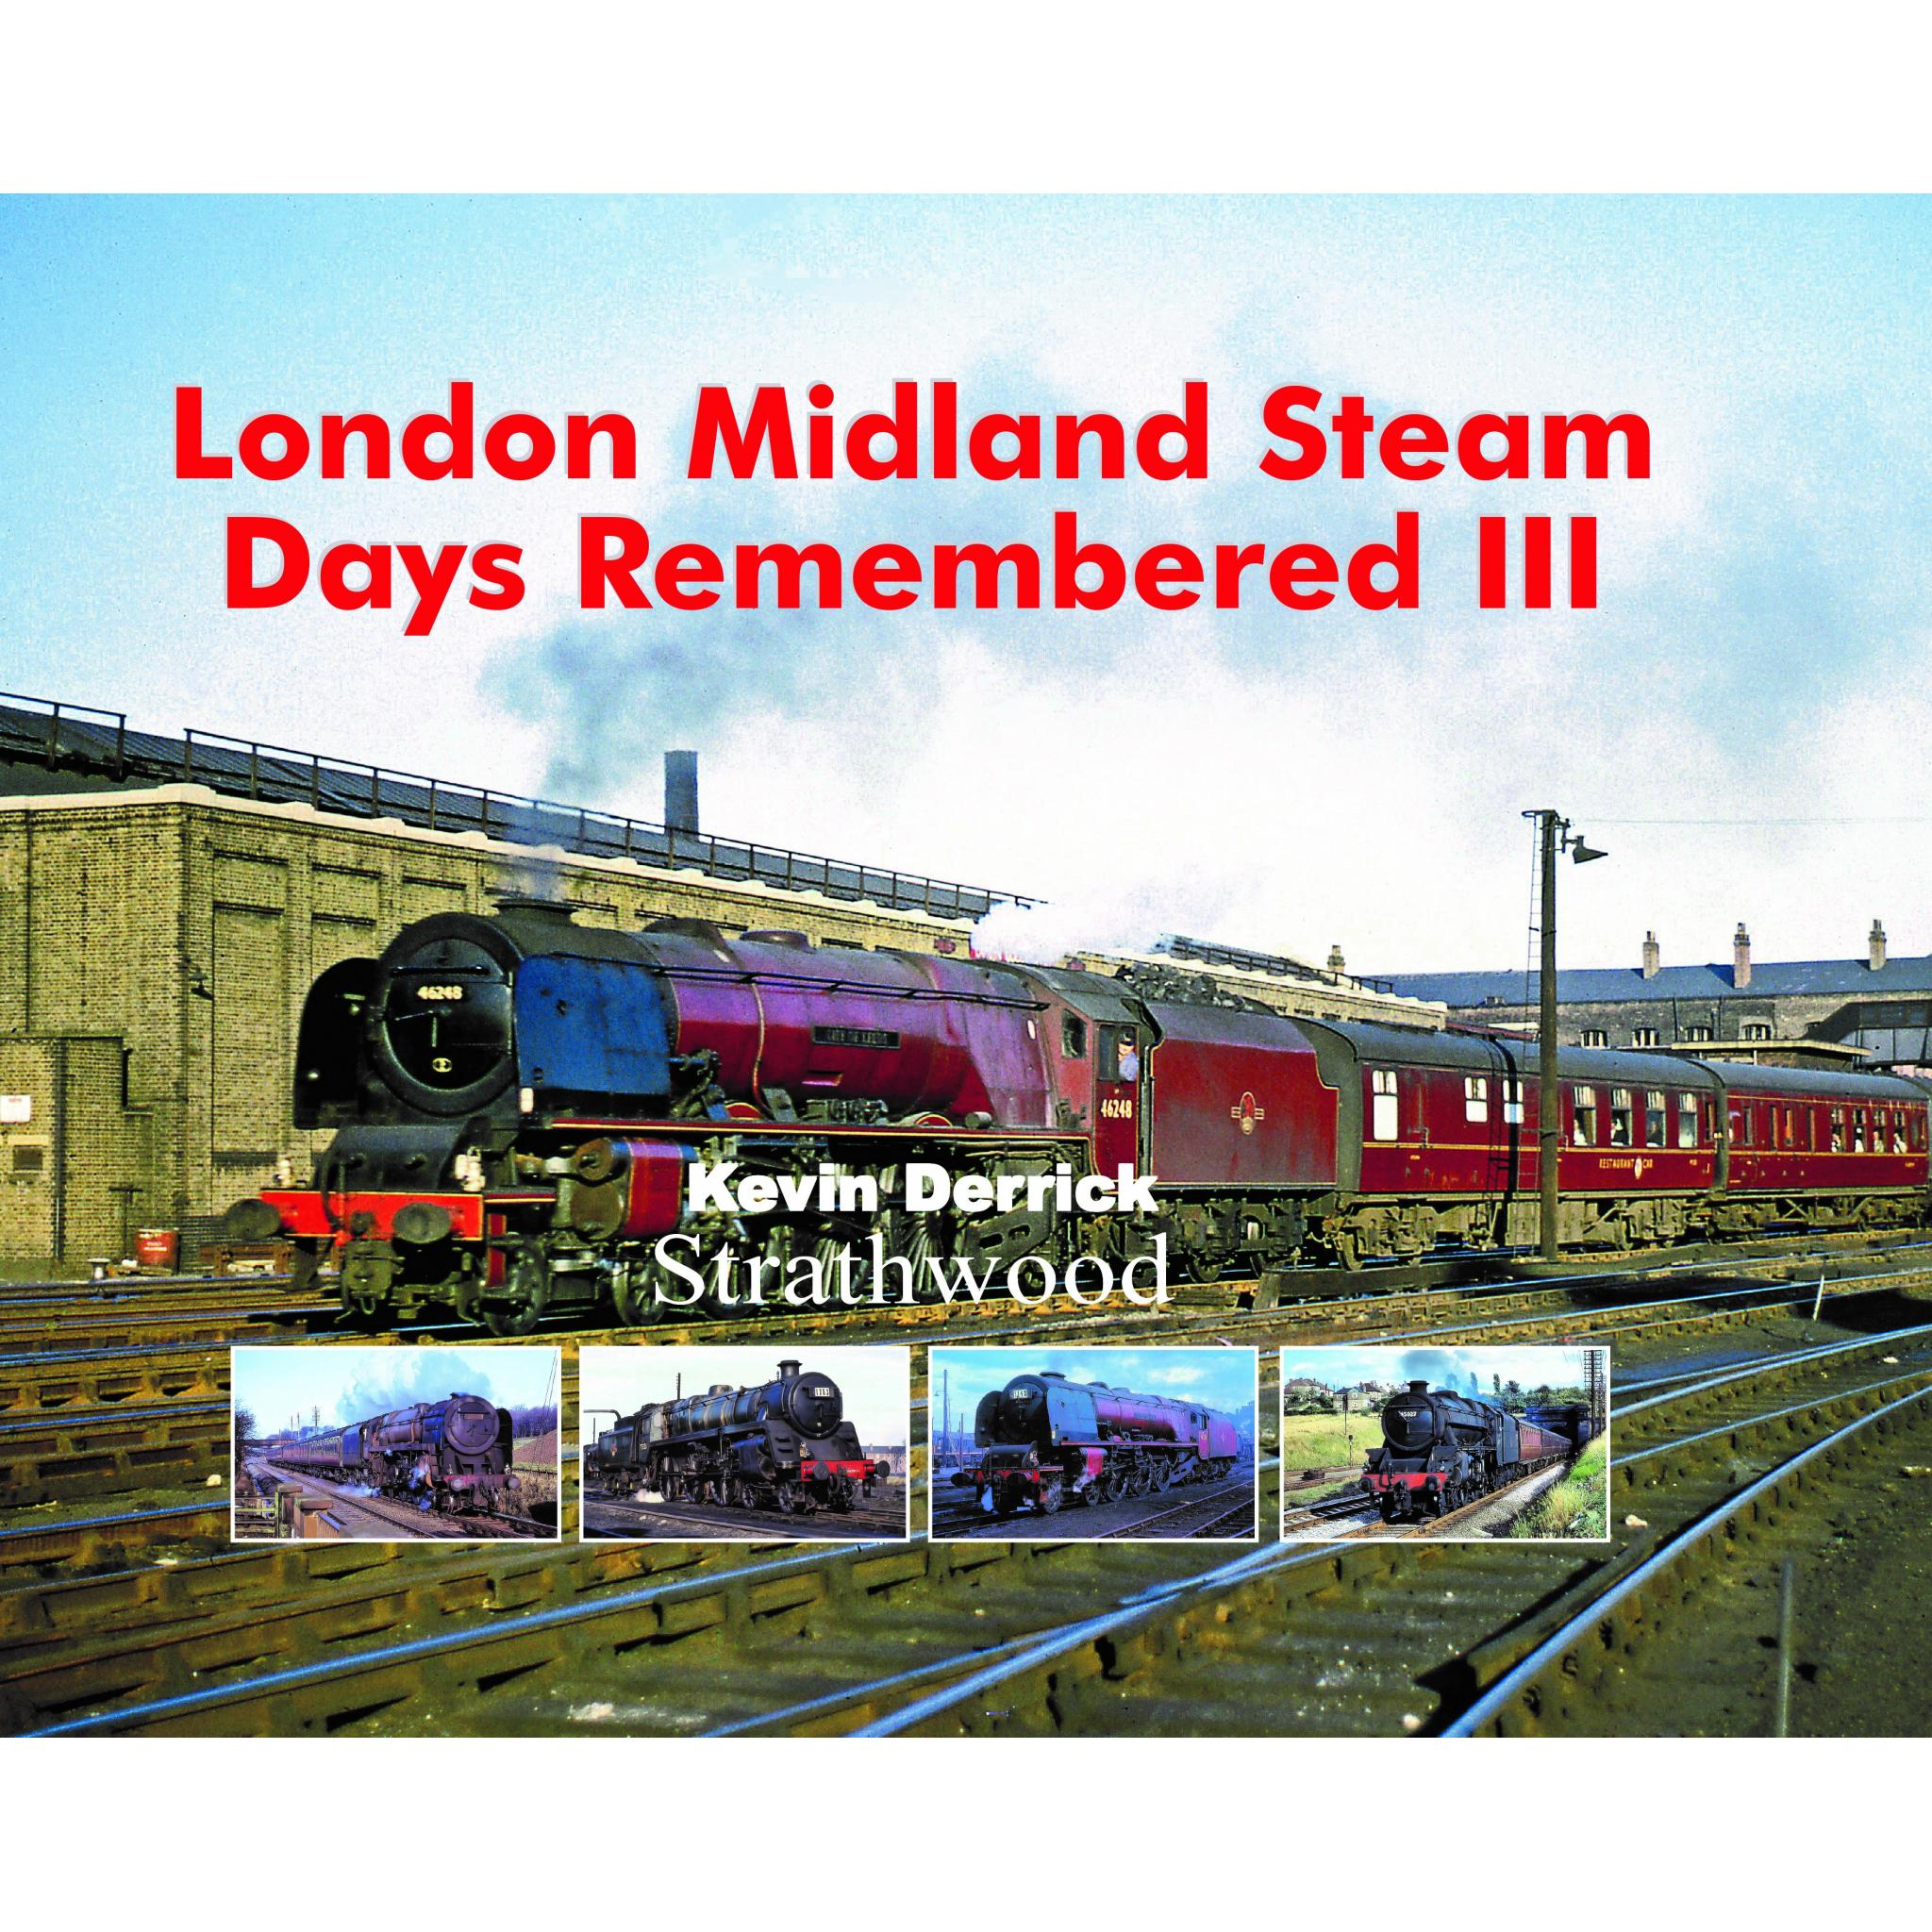 London Midland Steam Days Remembered III